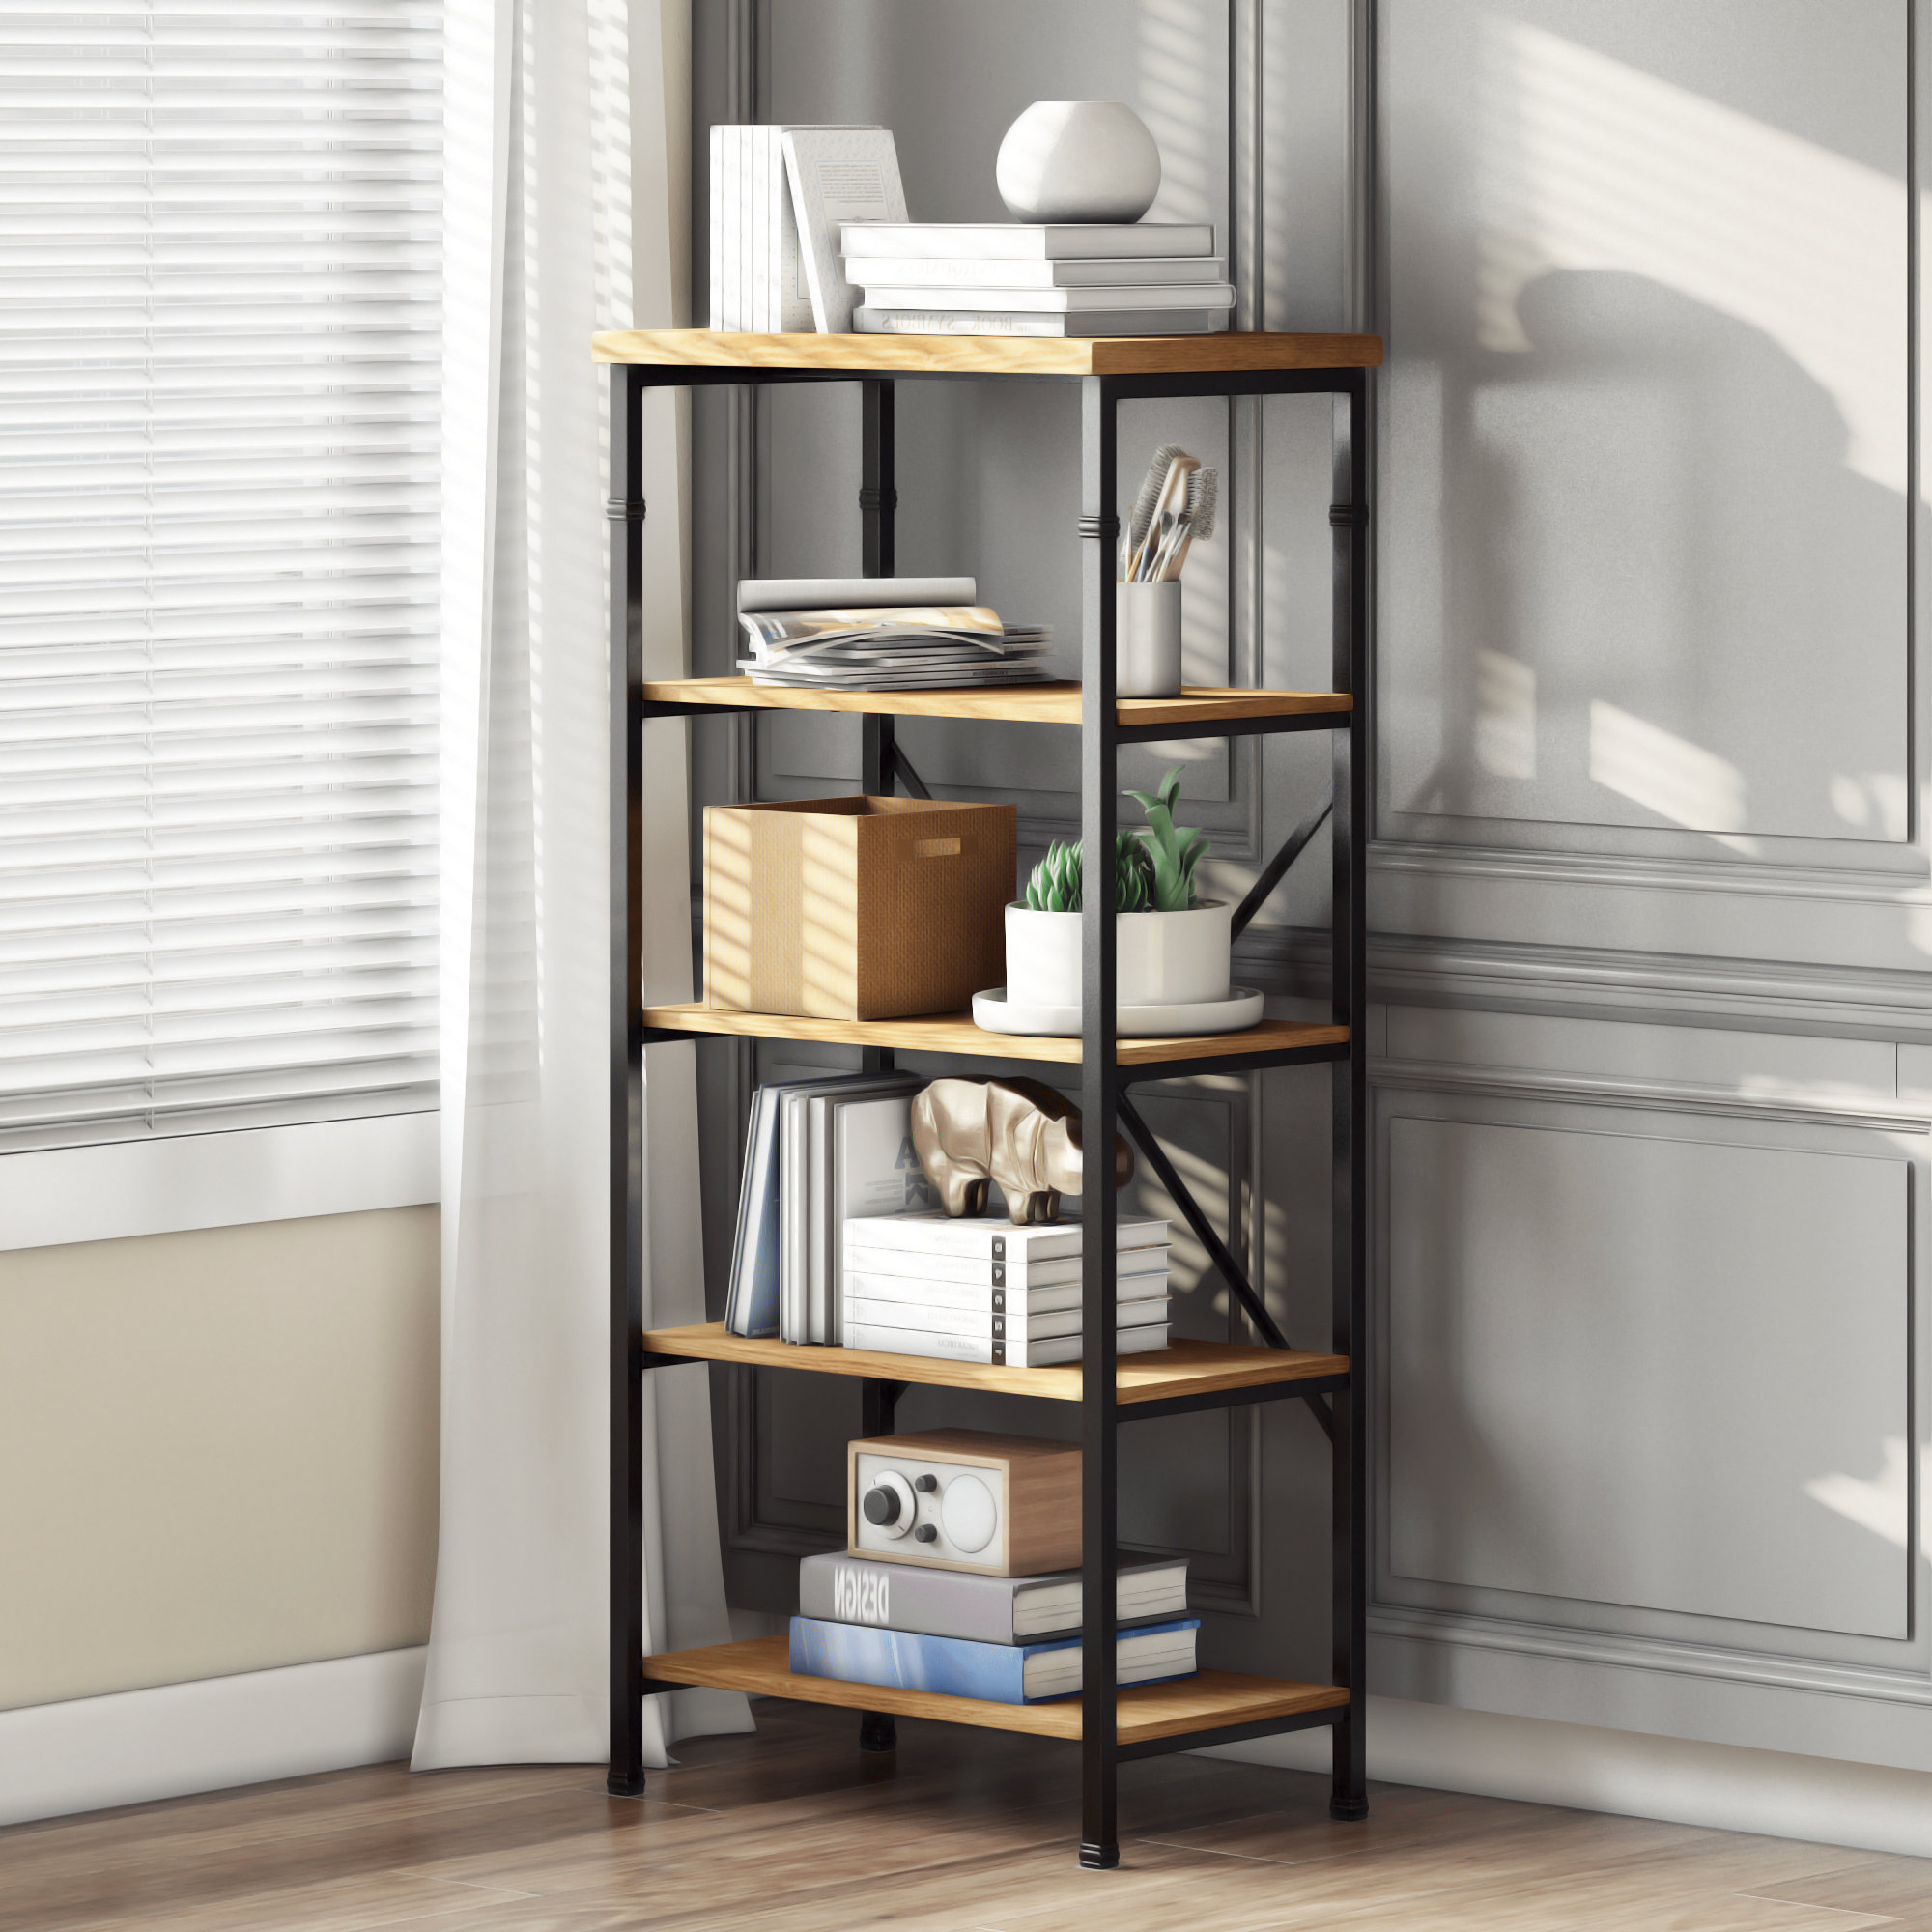 Cecelia Etagere Bookcases Intended For Famous Knapp Etagere Bookcase (View 14 of 20)